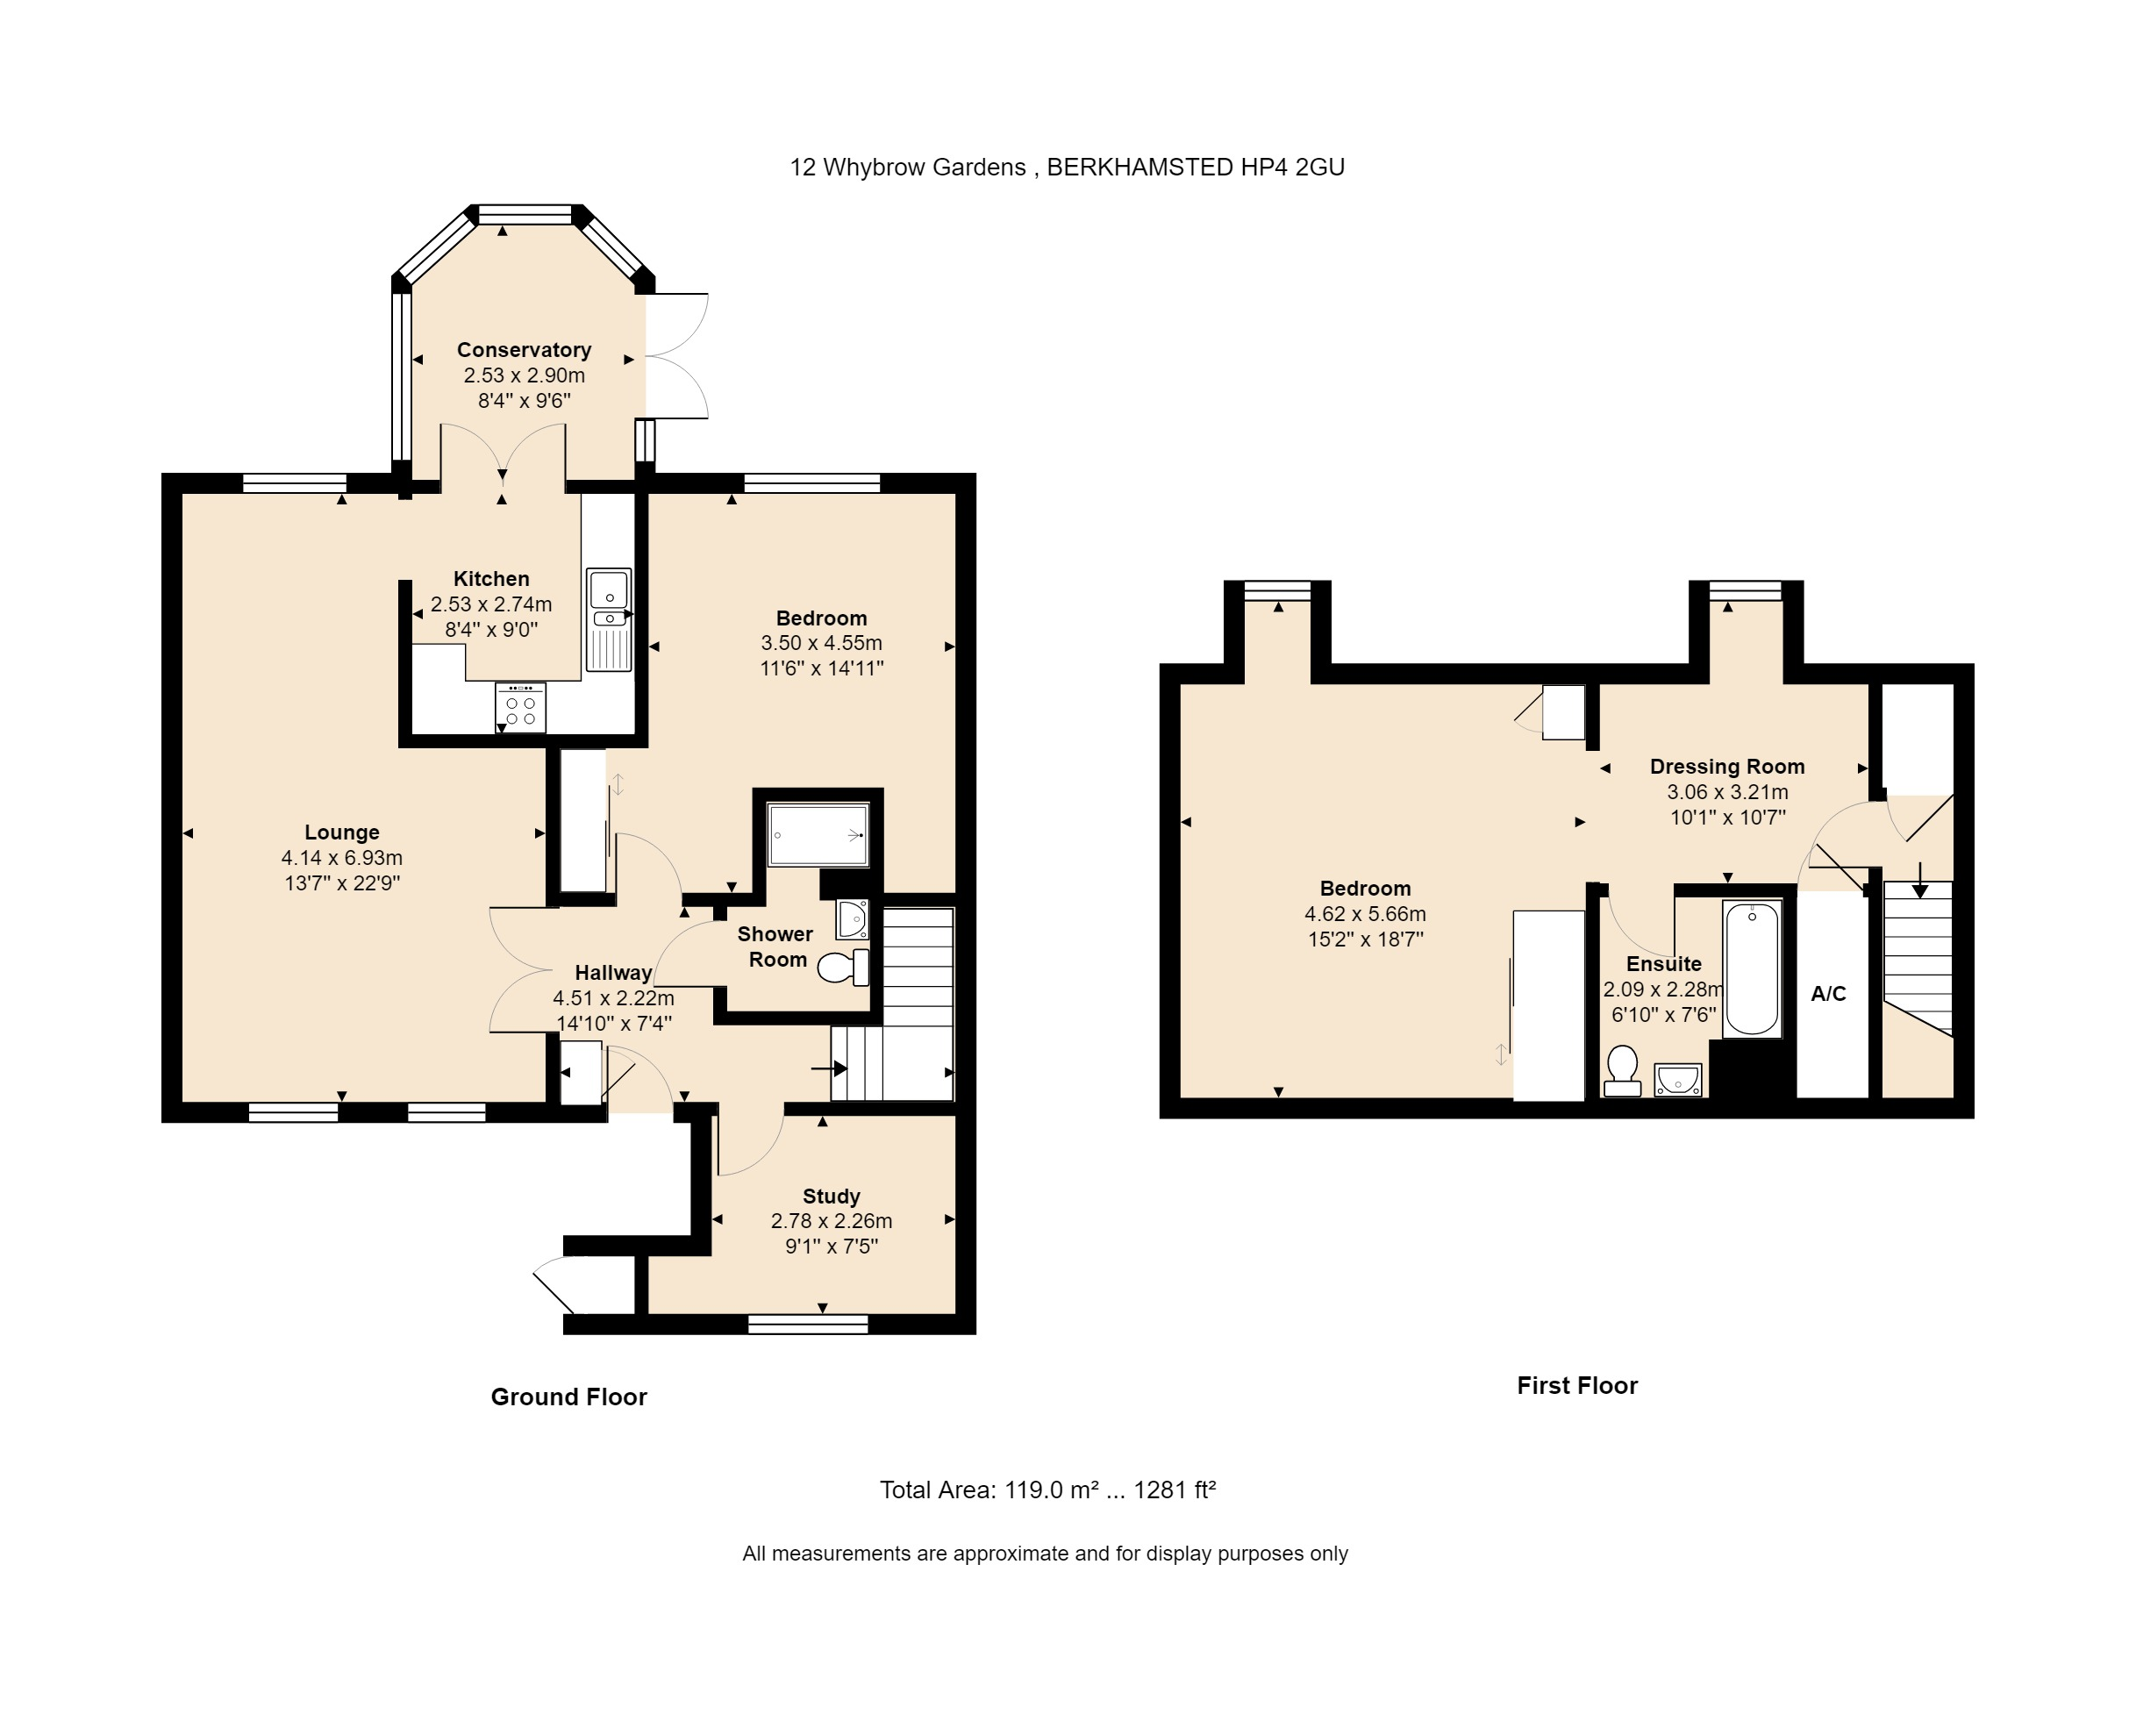 12 Whybrow Gardens Floorplan